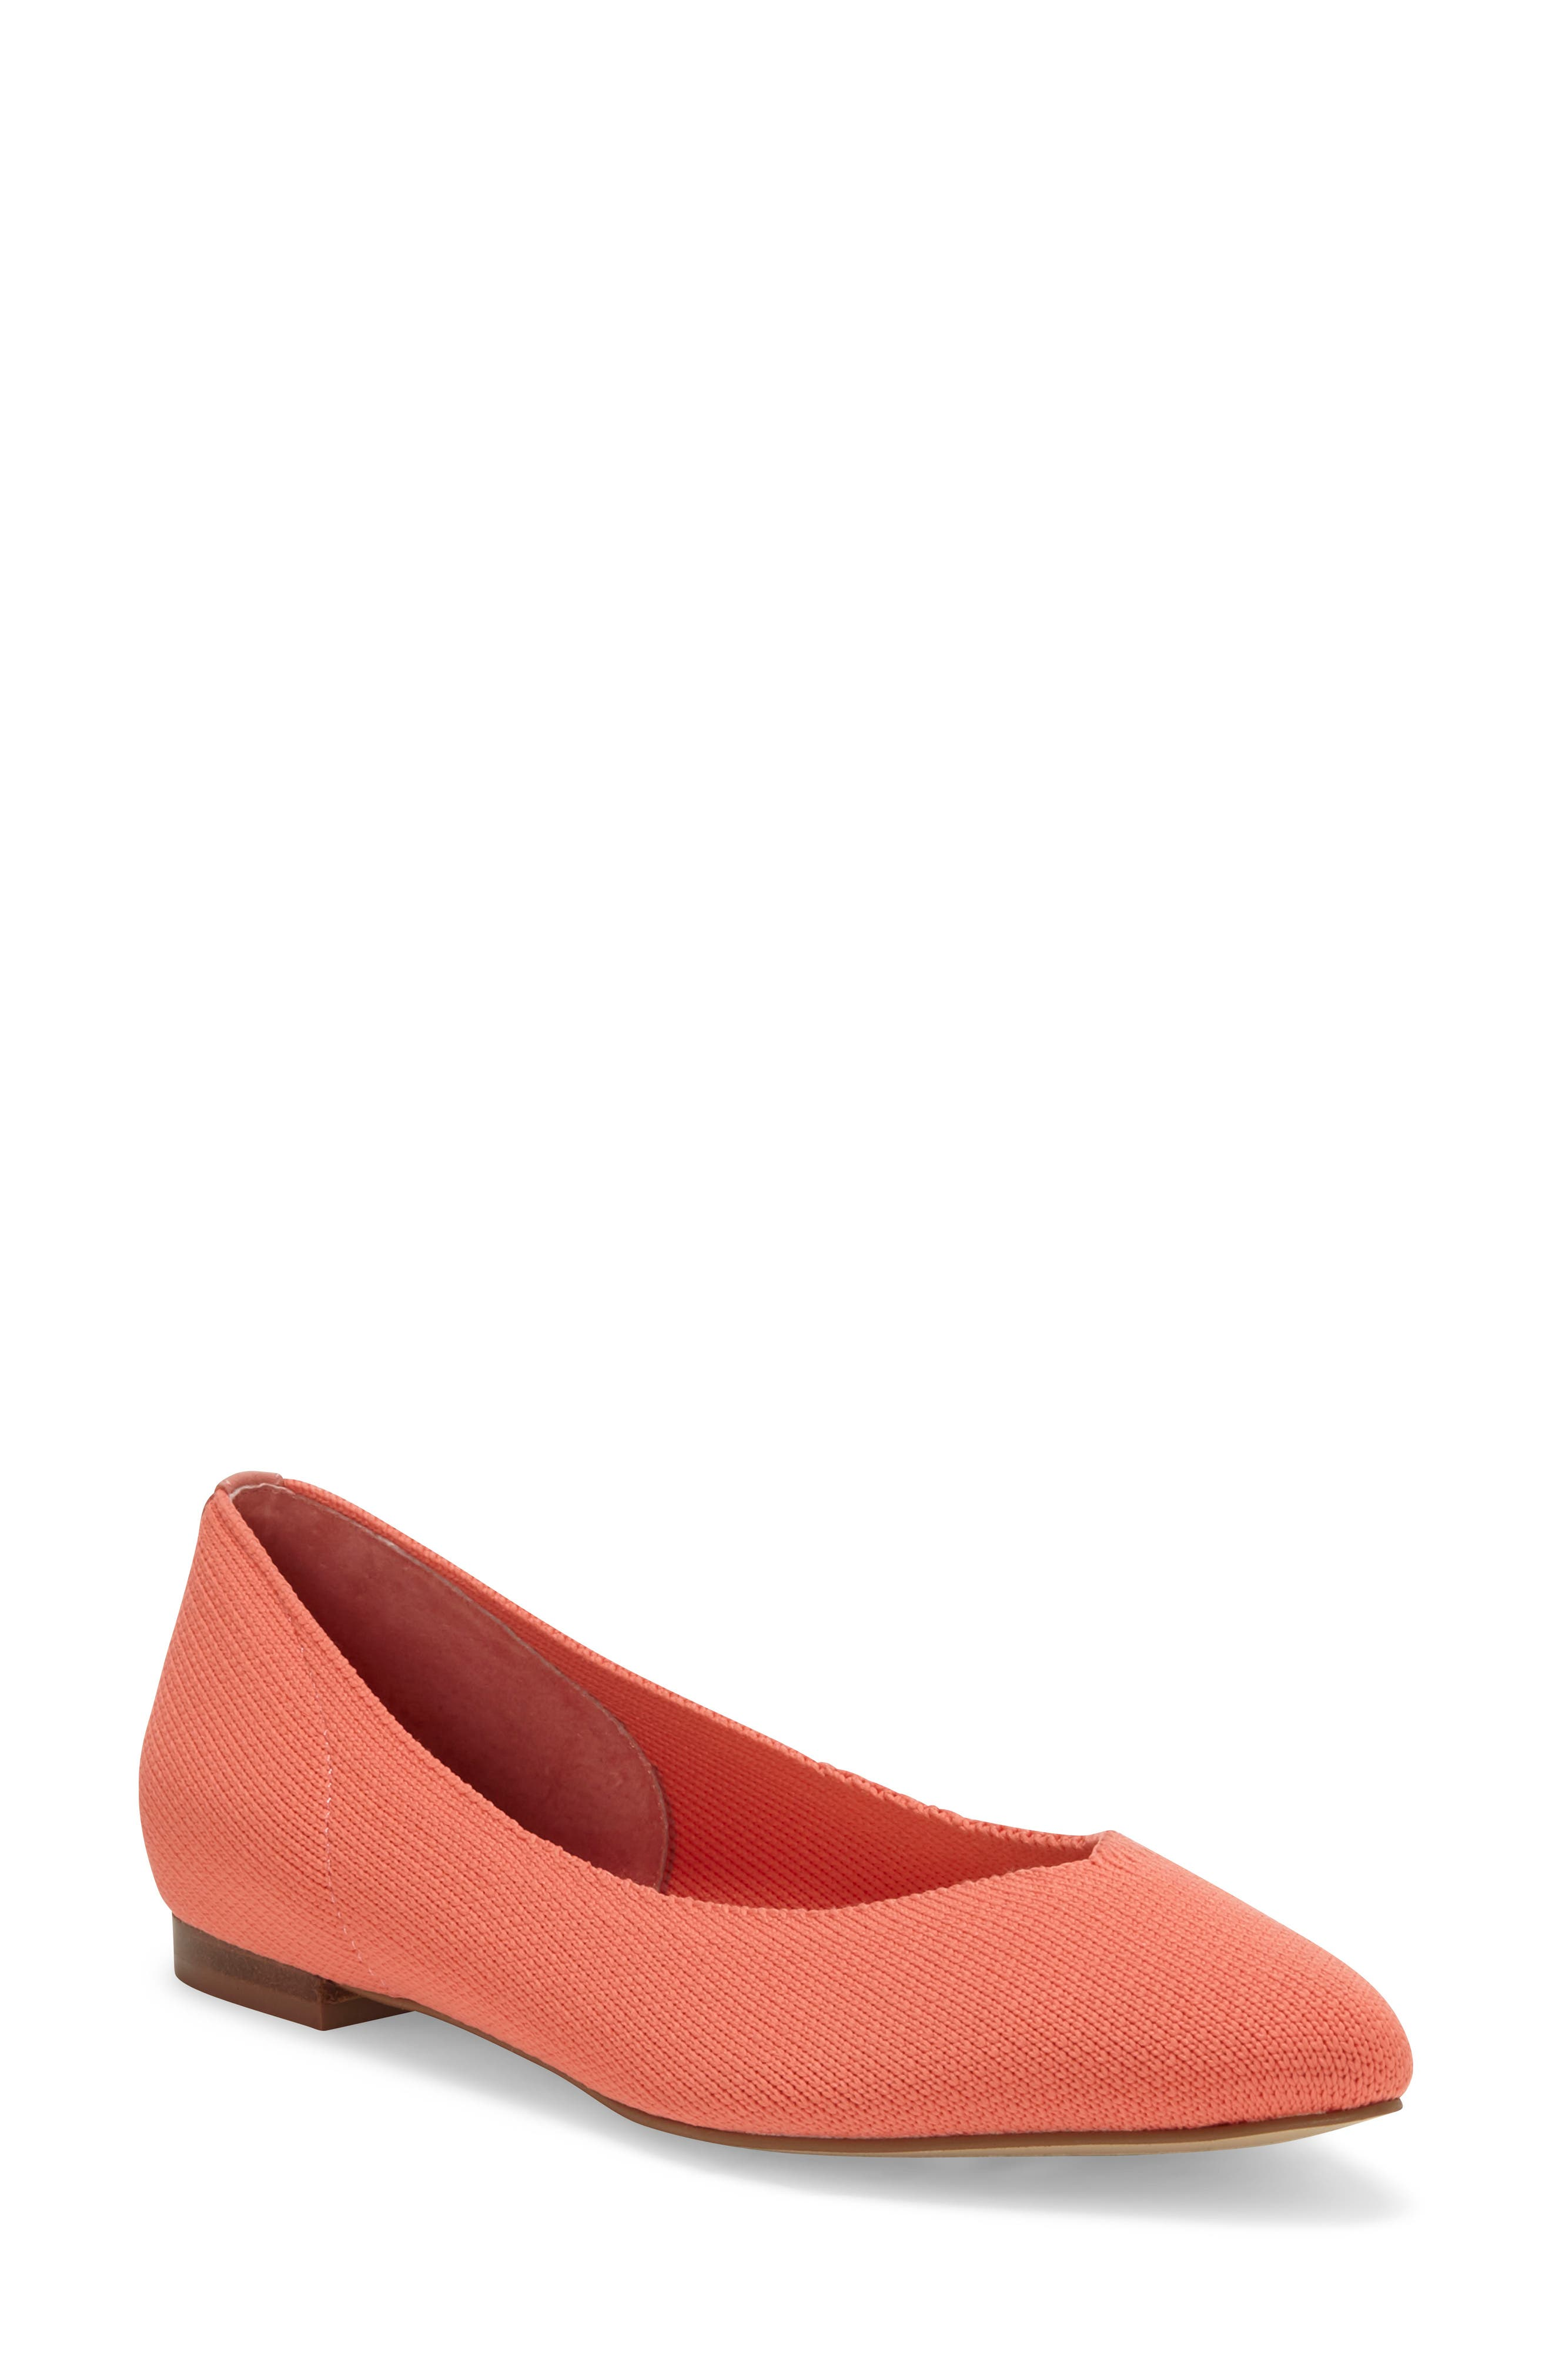 A stretchy knit upper brings contemporary appeal to a pointy-toe flat that\\\'s comfortable enough for the office and stylish enough for after hours. Style Name: Cc Corso Como Julia Knit Flat (Women). Style Number: 5940867 1. Available in stores.